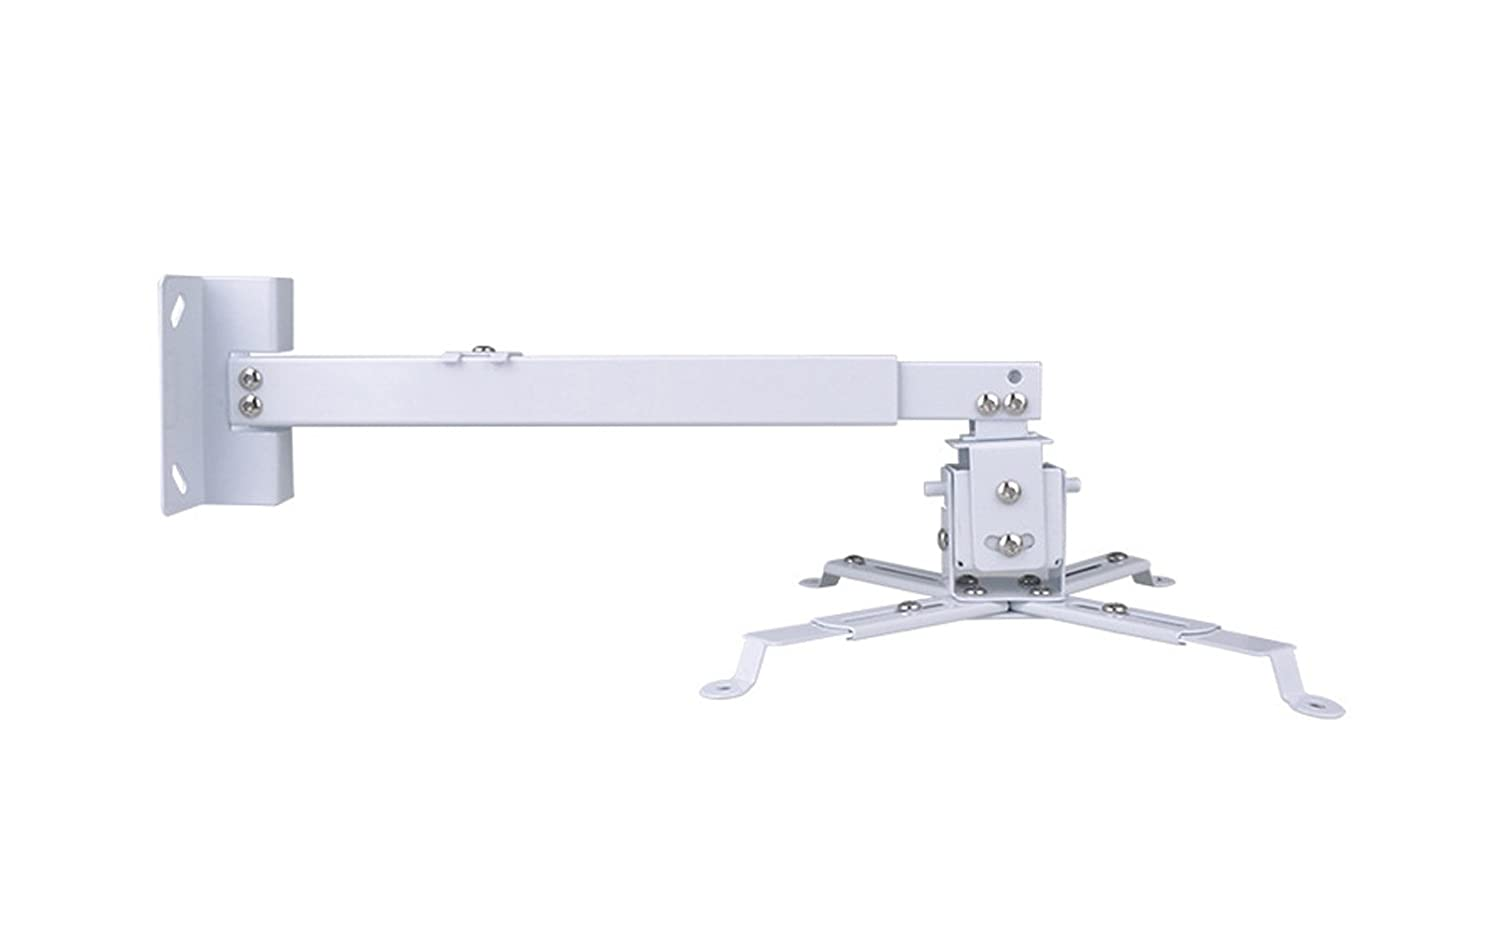 Amazon prochosen universal lcddlp projector drop ceiling amazon prochosen universal lcddlp projector drop ceiling mount with adjustable extension pole and arms white electronics dailygadgetfo Gallery